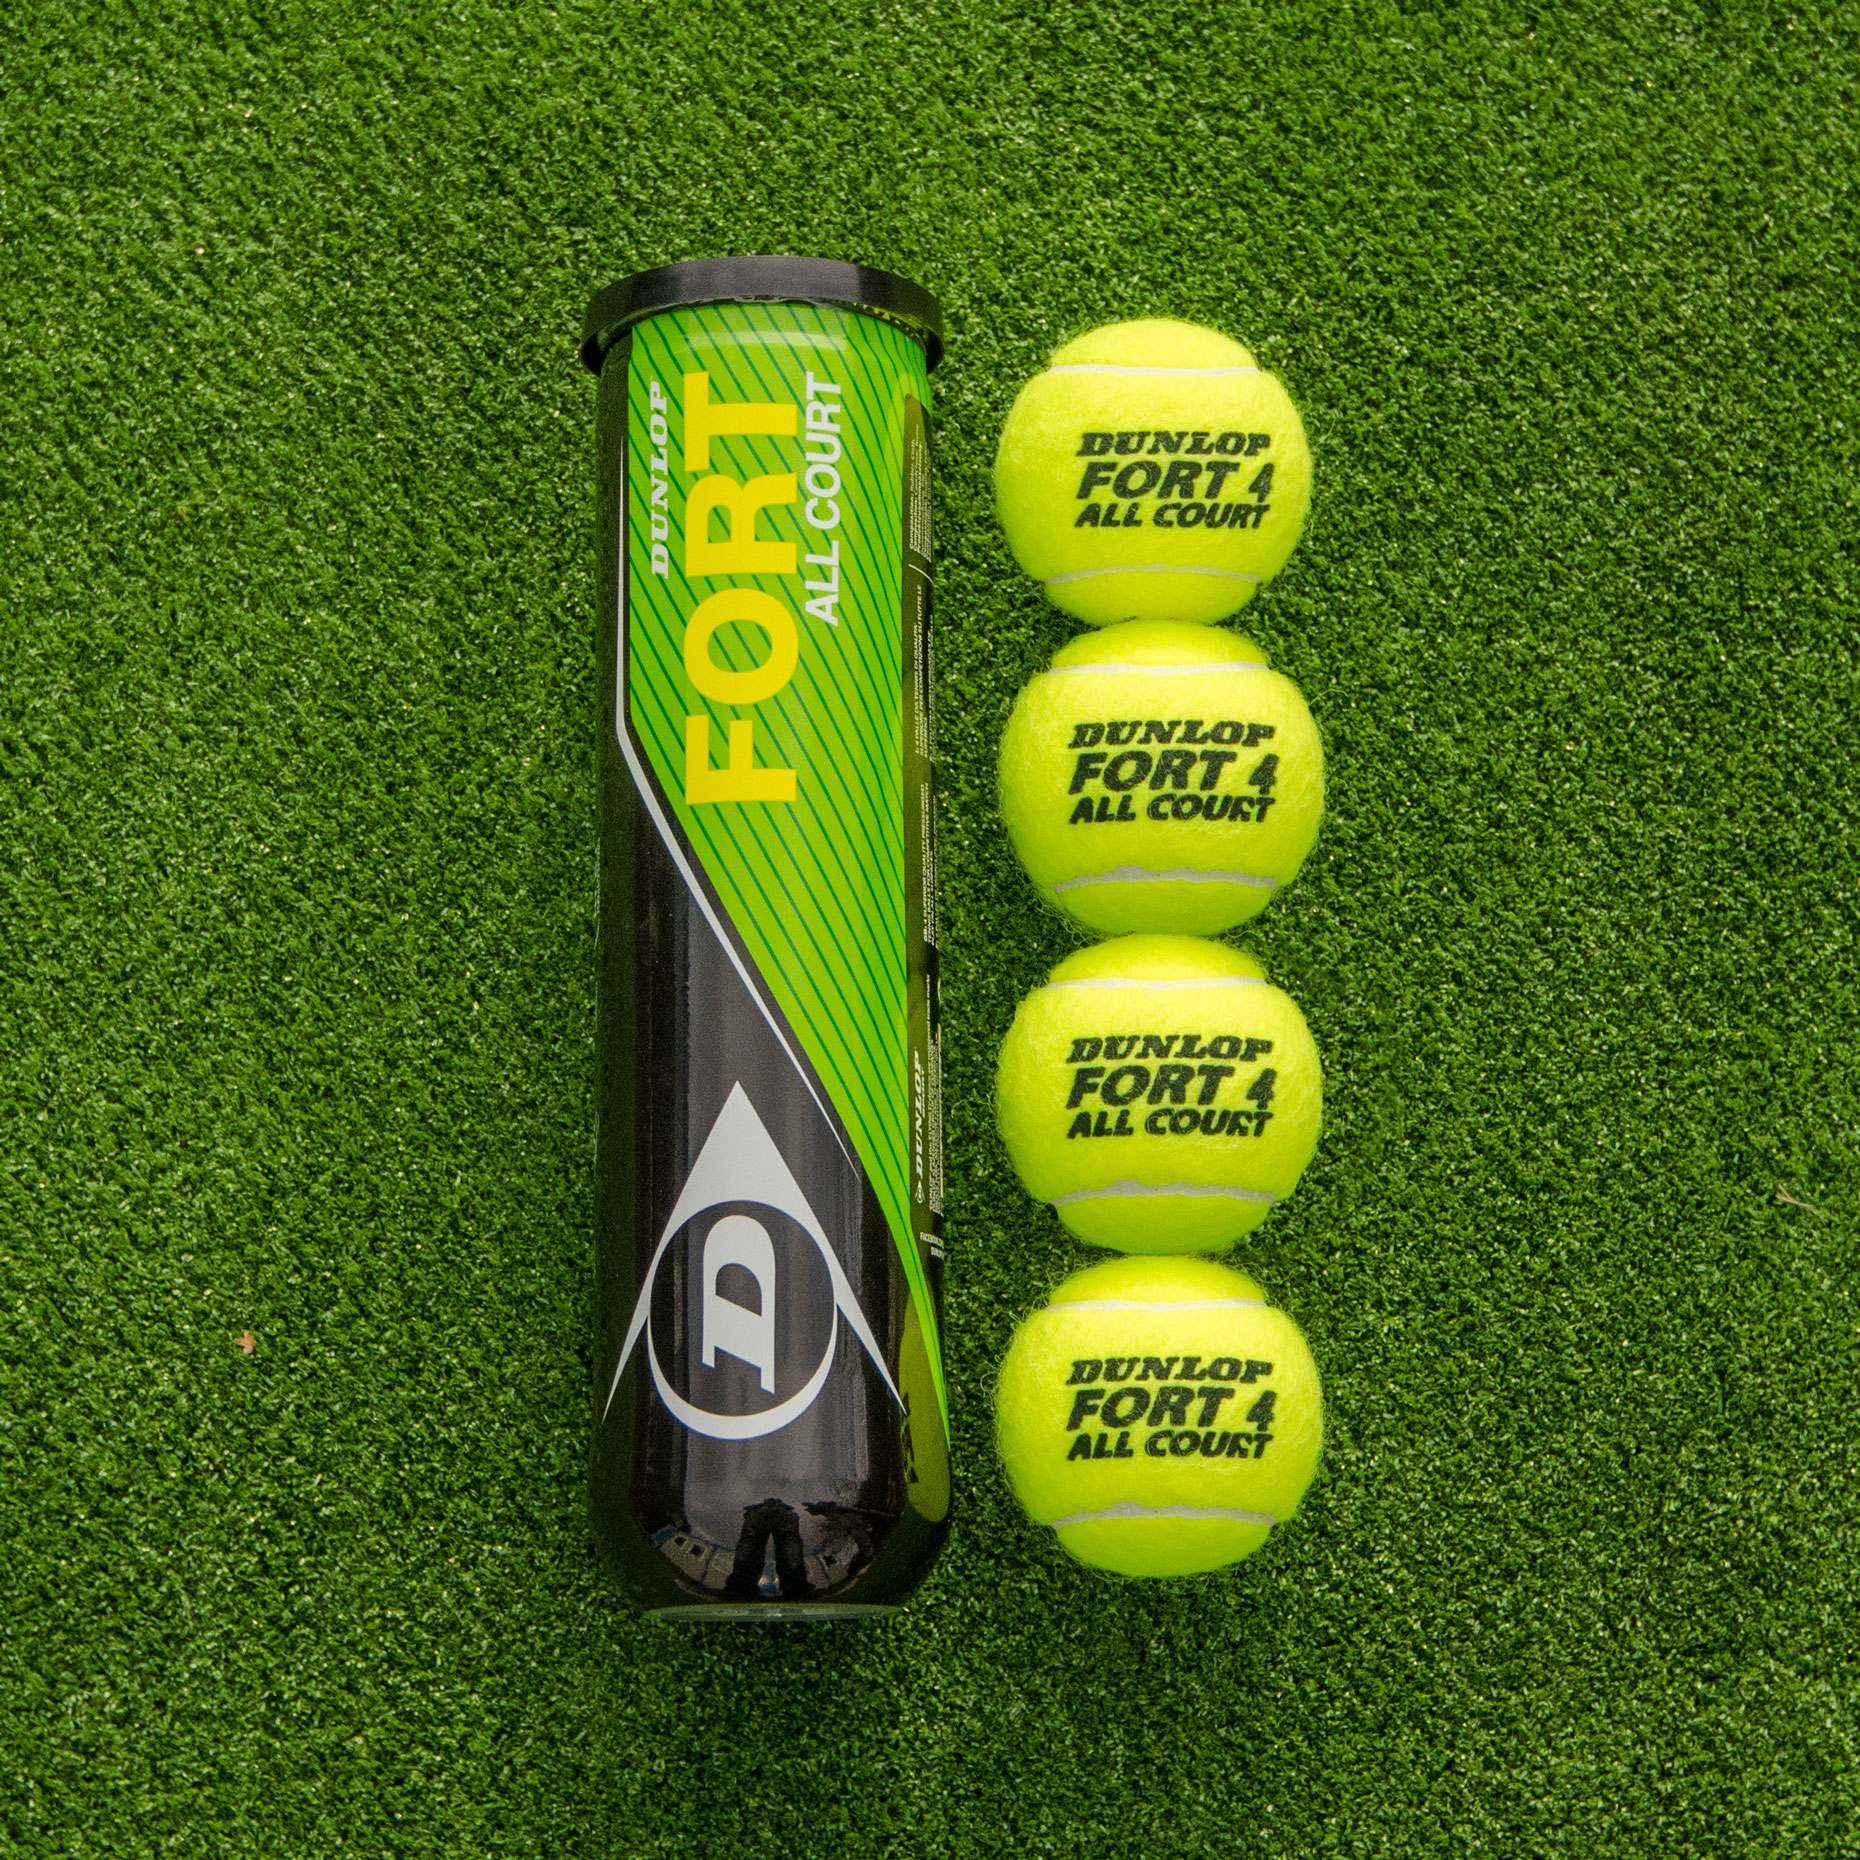 dunlop fort all court tennis balls />